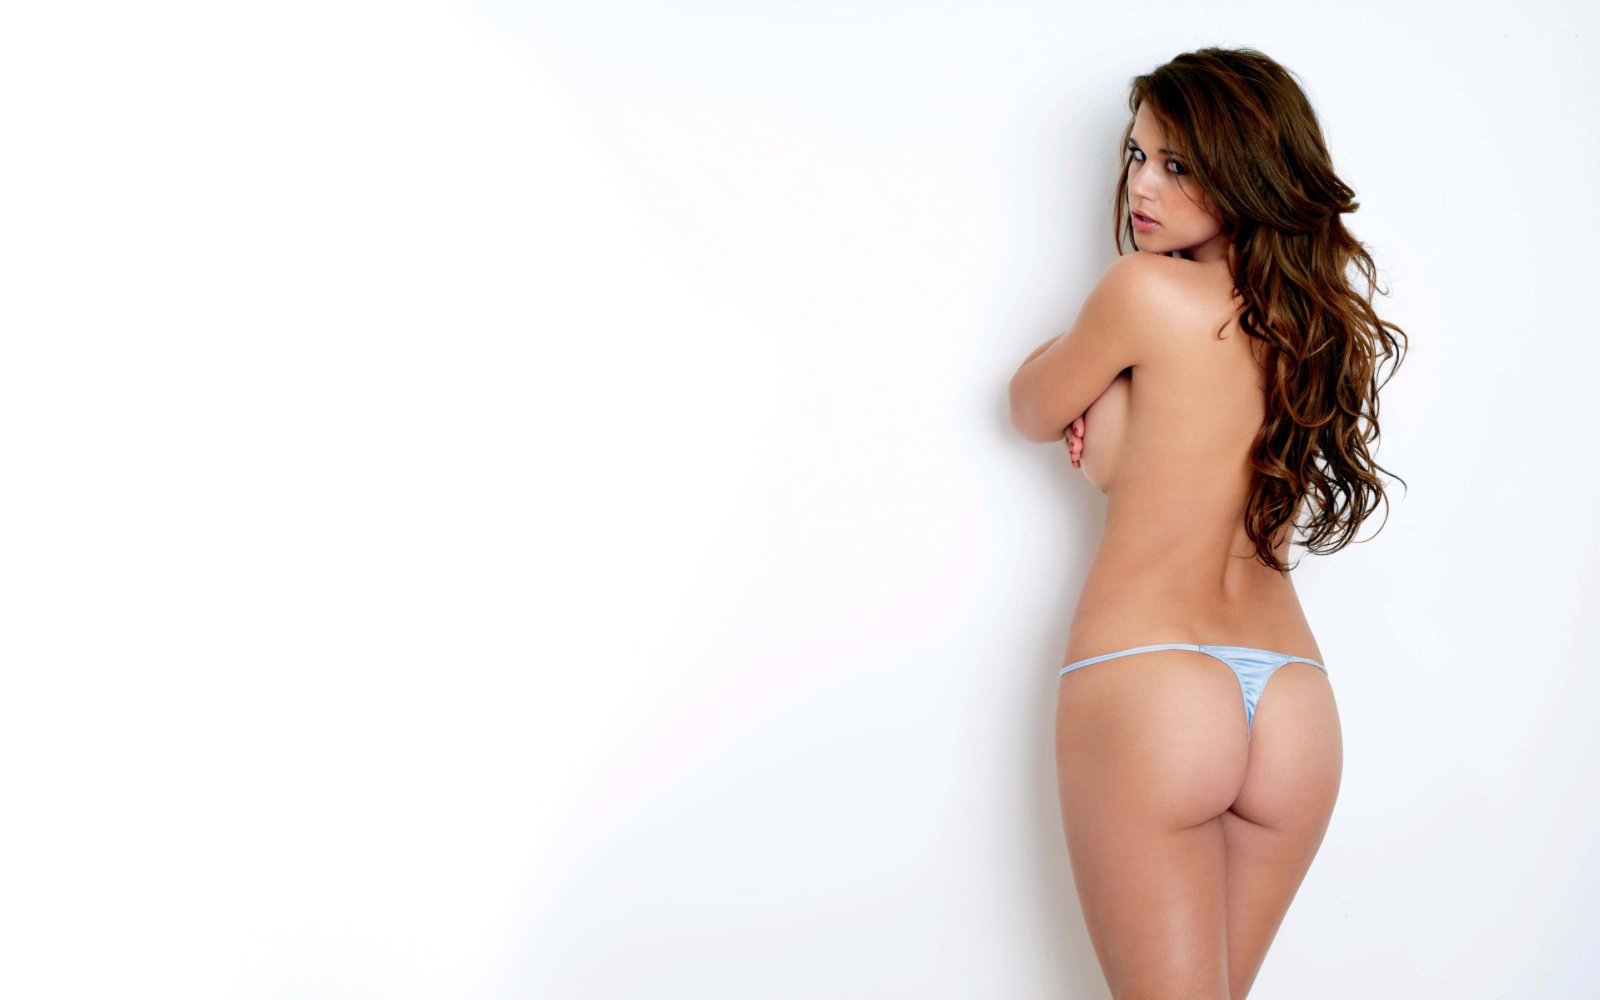 NSFW – White Wall With Firm Ass